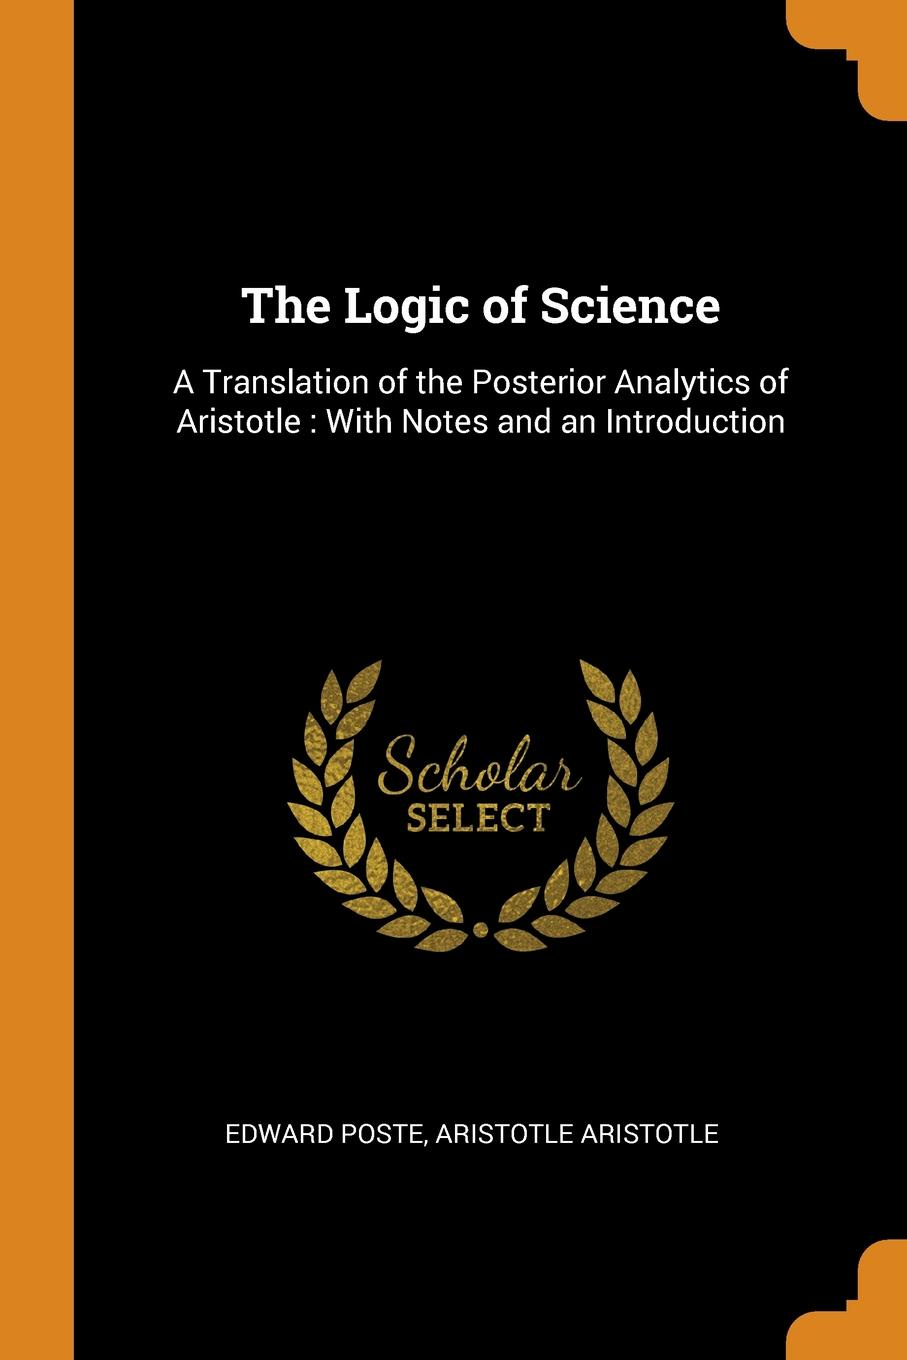 Edward Poste, Aristotle The Logic of Science. A Translation the Posterior Analytics : With Notes and an Introduction